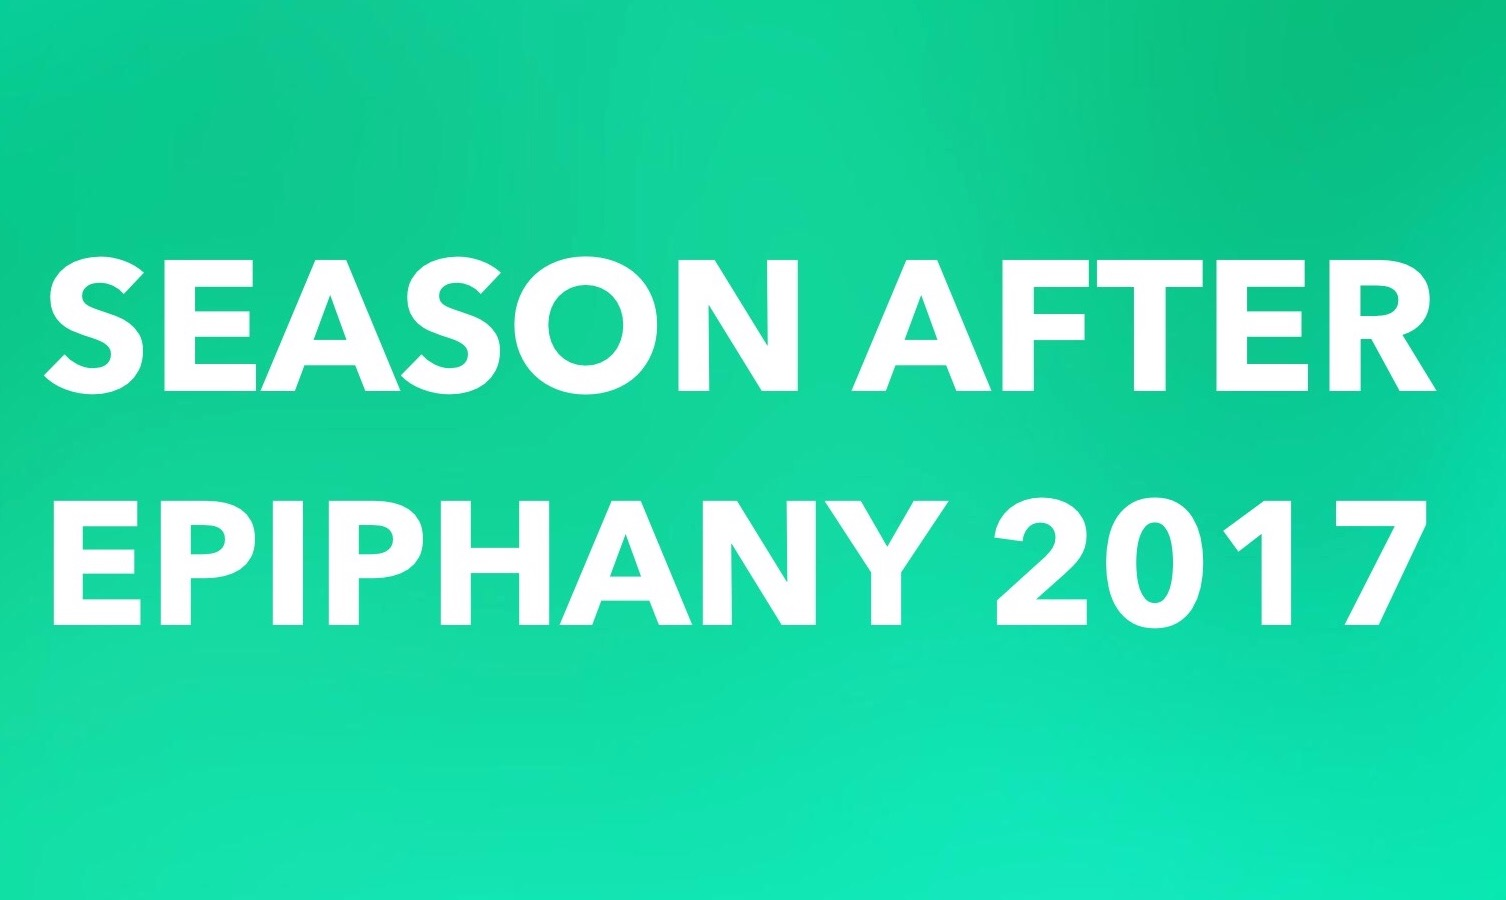 Season After Epiphany 2017